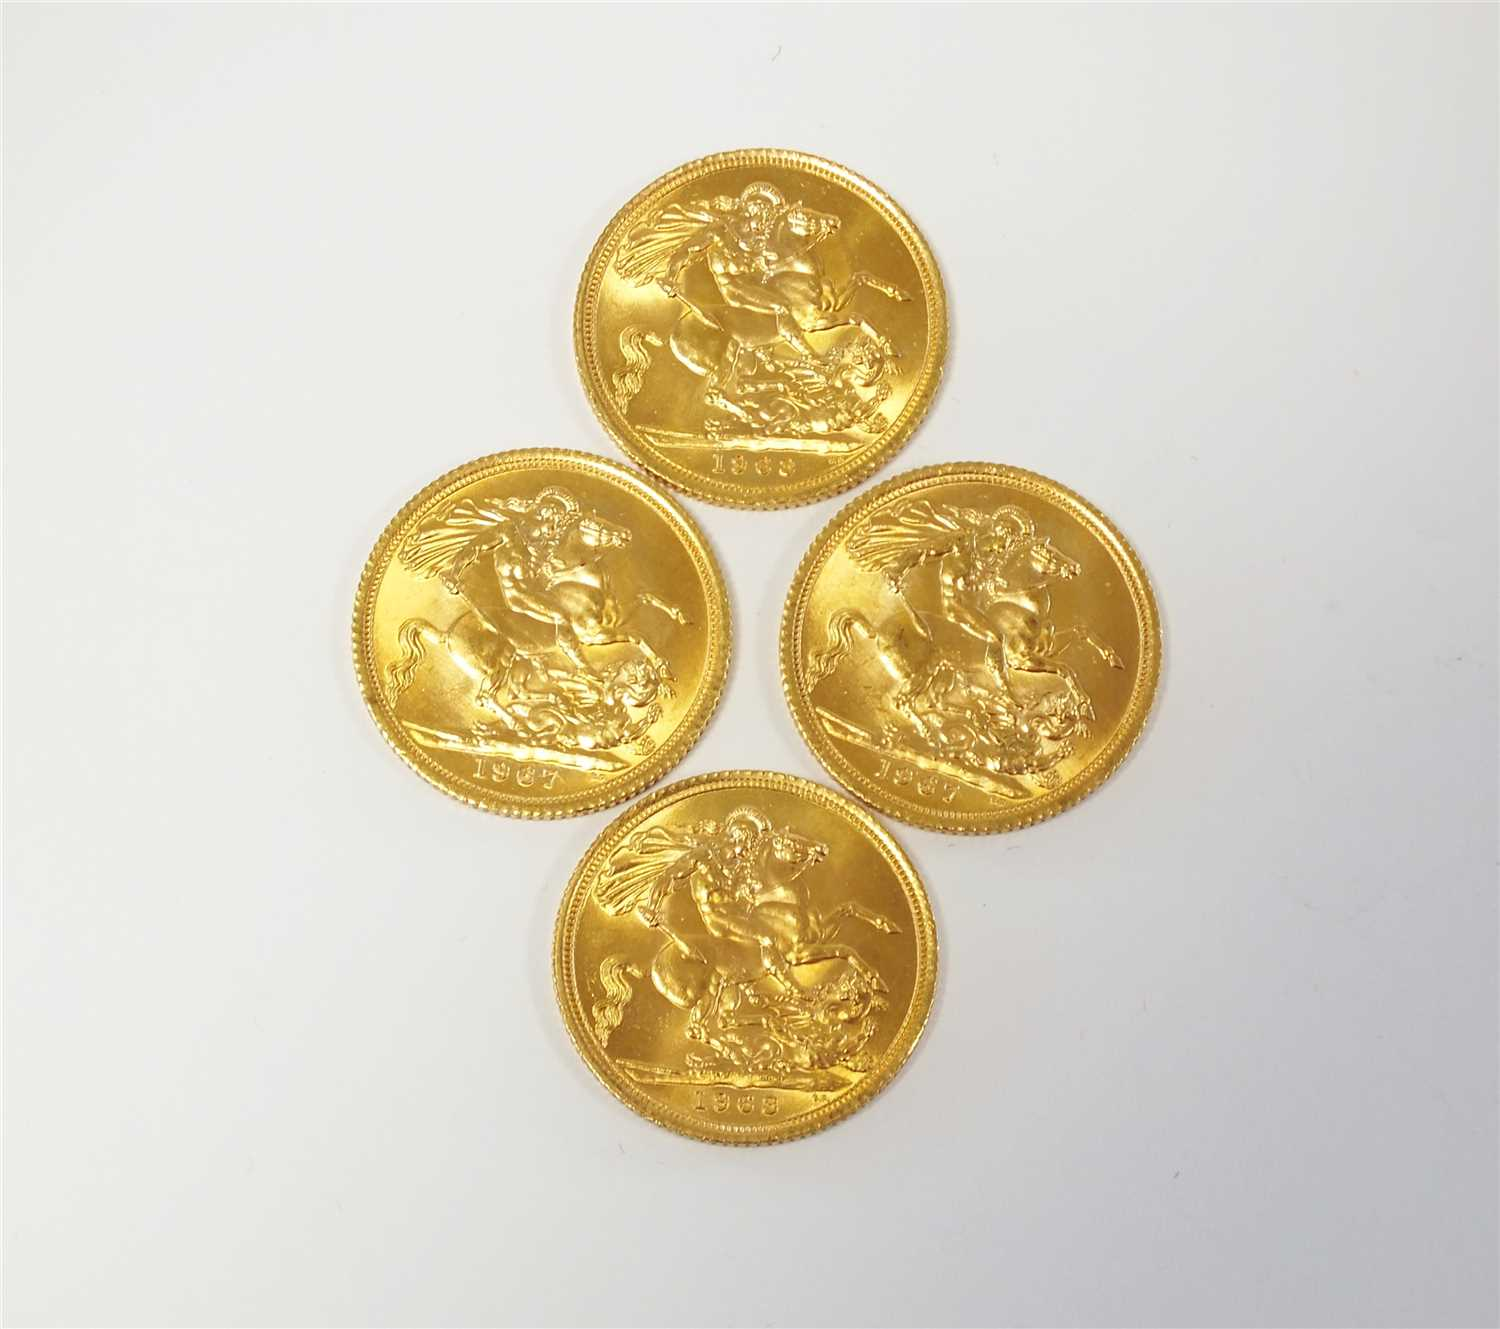 287 - Four sovereigns